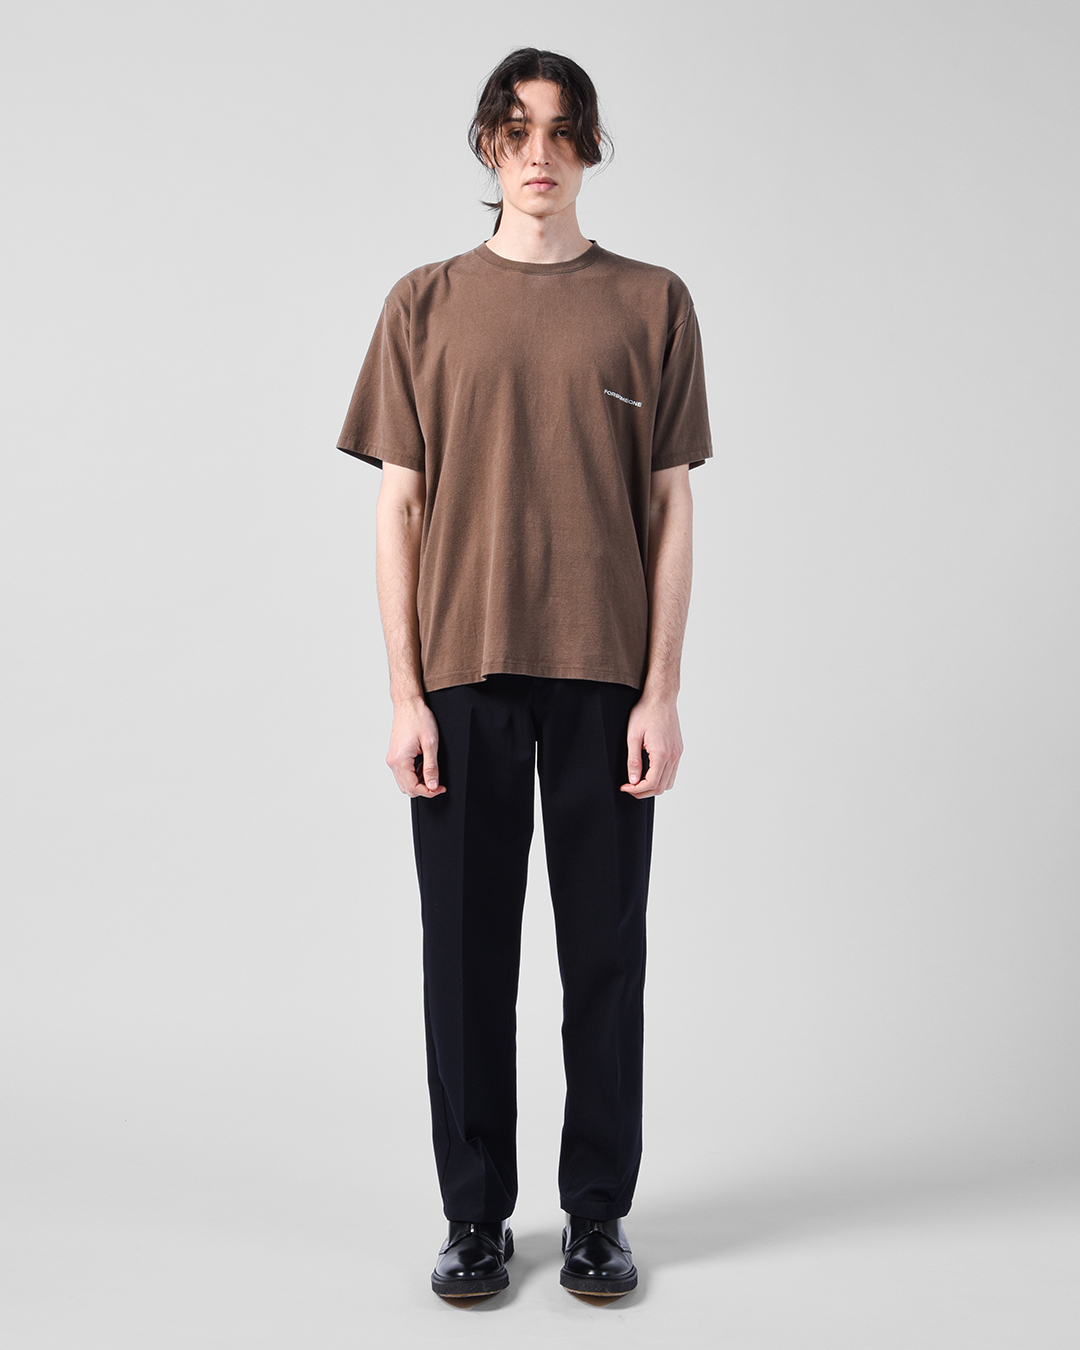 BACK FSO 001 TEE 2.0 詳細画像 Brown 9